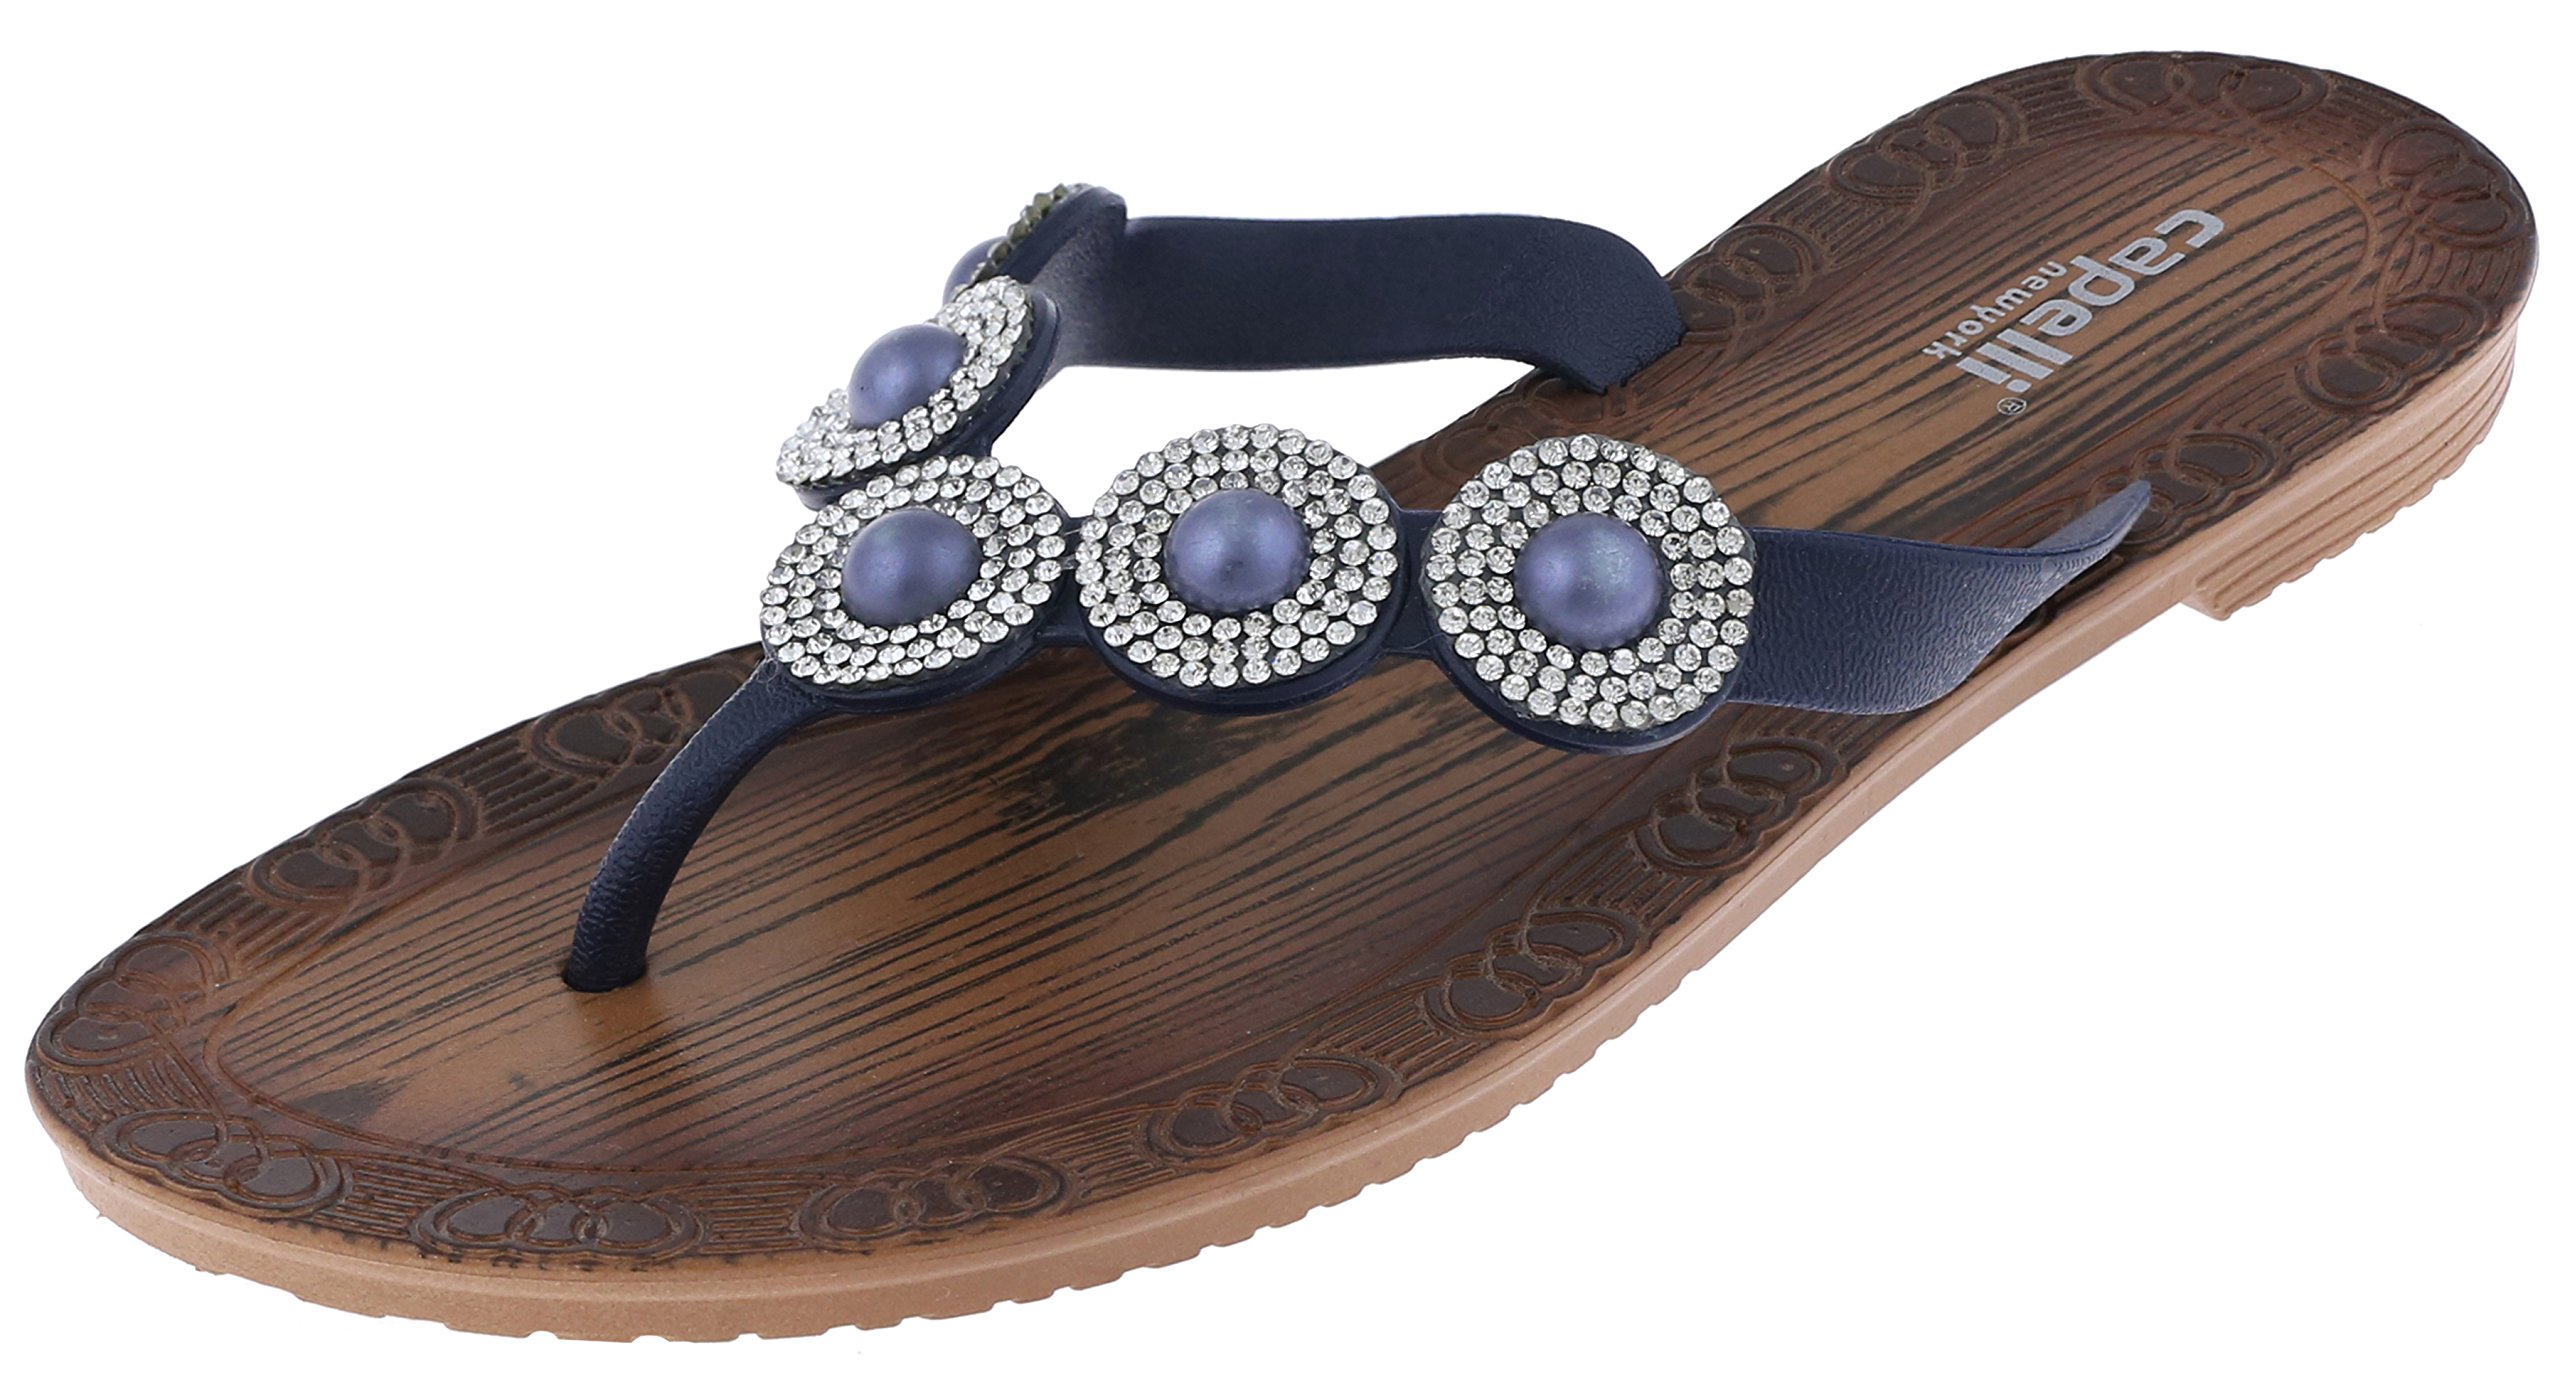 Capelli New York Ladies Flip Flops with Pearl and Rhinestone Trim and Faux Wood Sock Navy 8